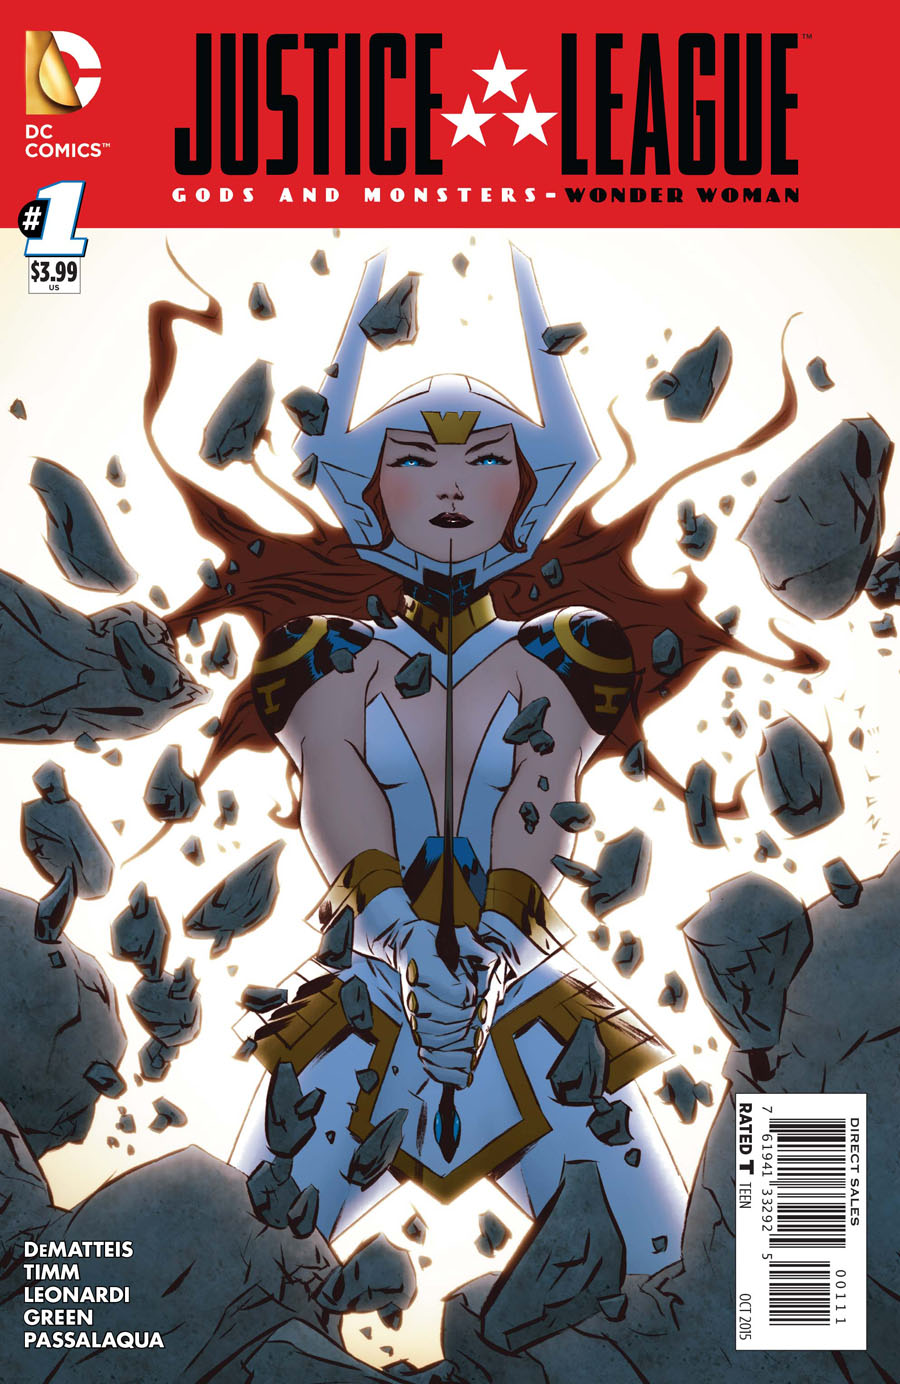 Justice League Gods And Monsters Wonder Woman #1 Cover A Regular Jae Lee Cover